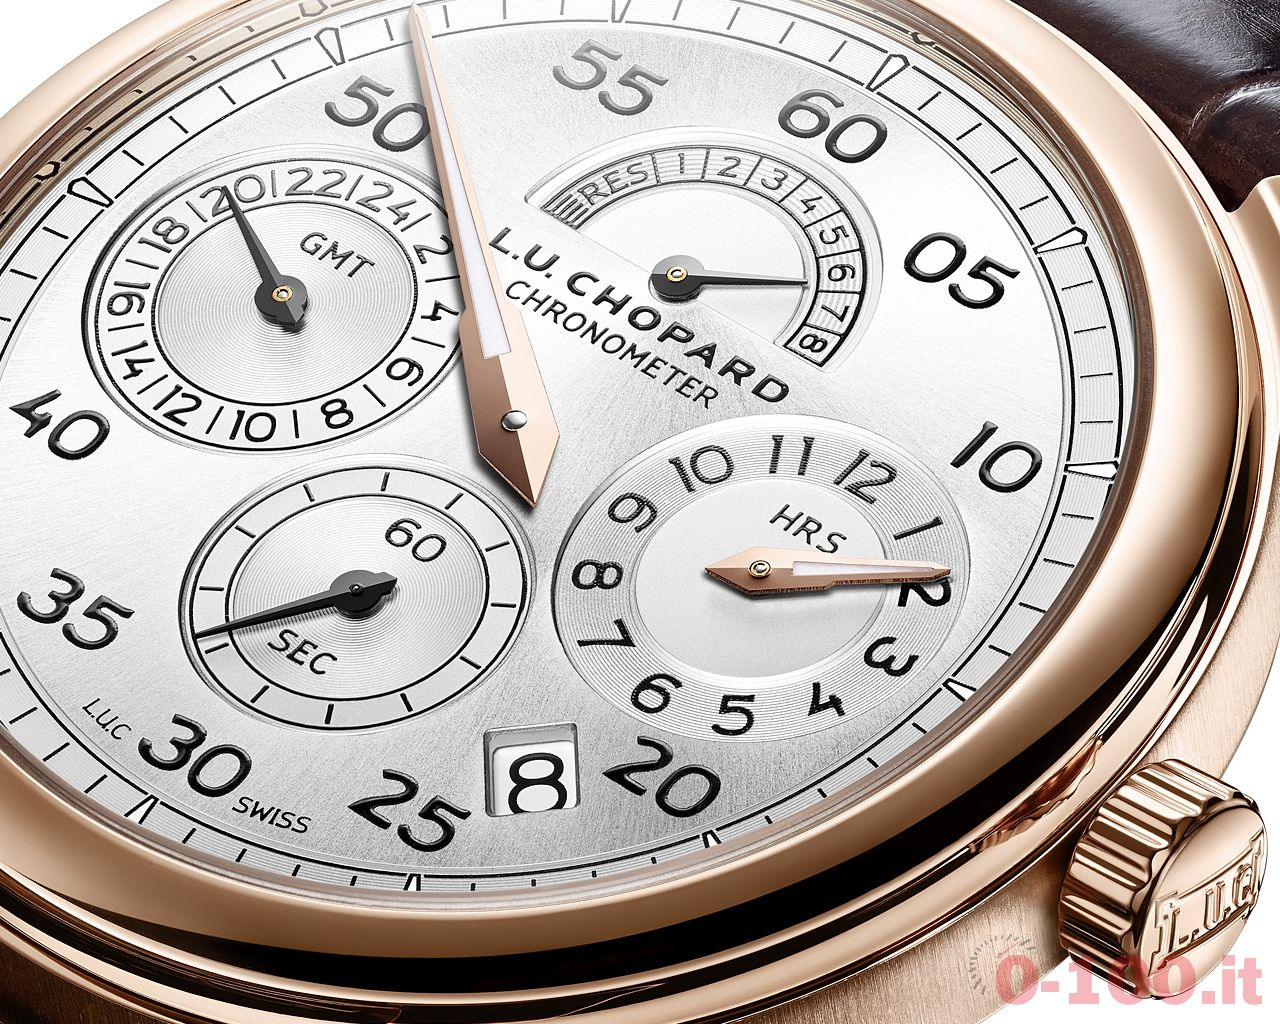 anteprima-baselworld-2015-chopard-l-u-c-regulator-ref-161971-5001-prezzo-price_0-100_2